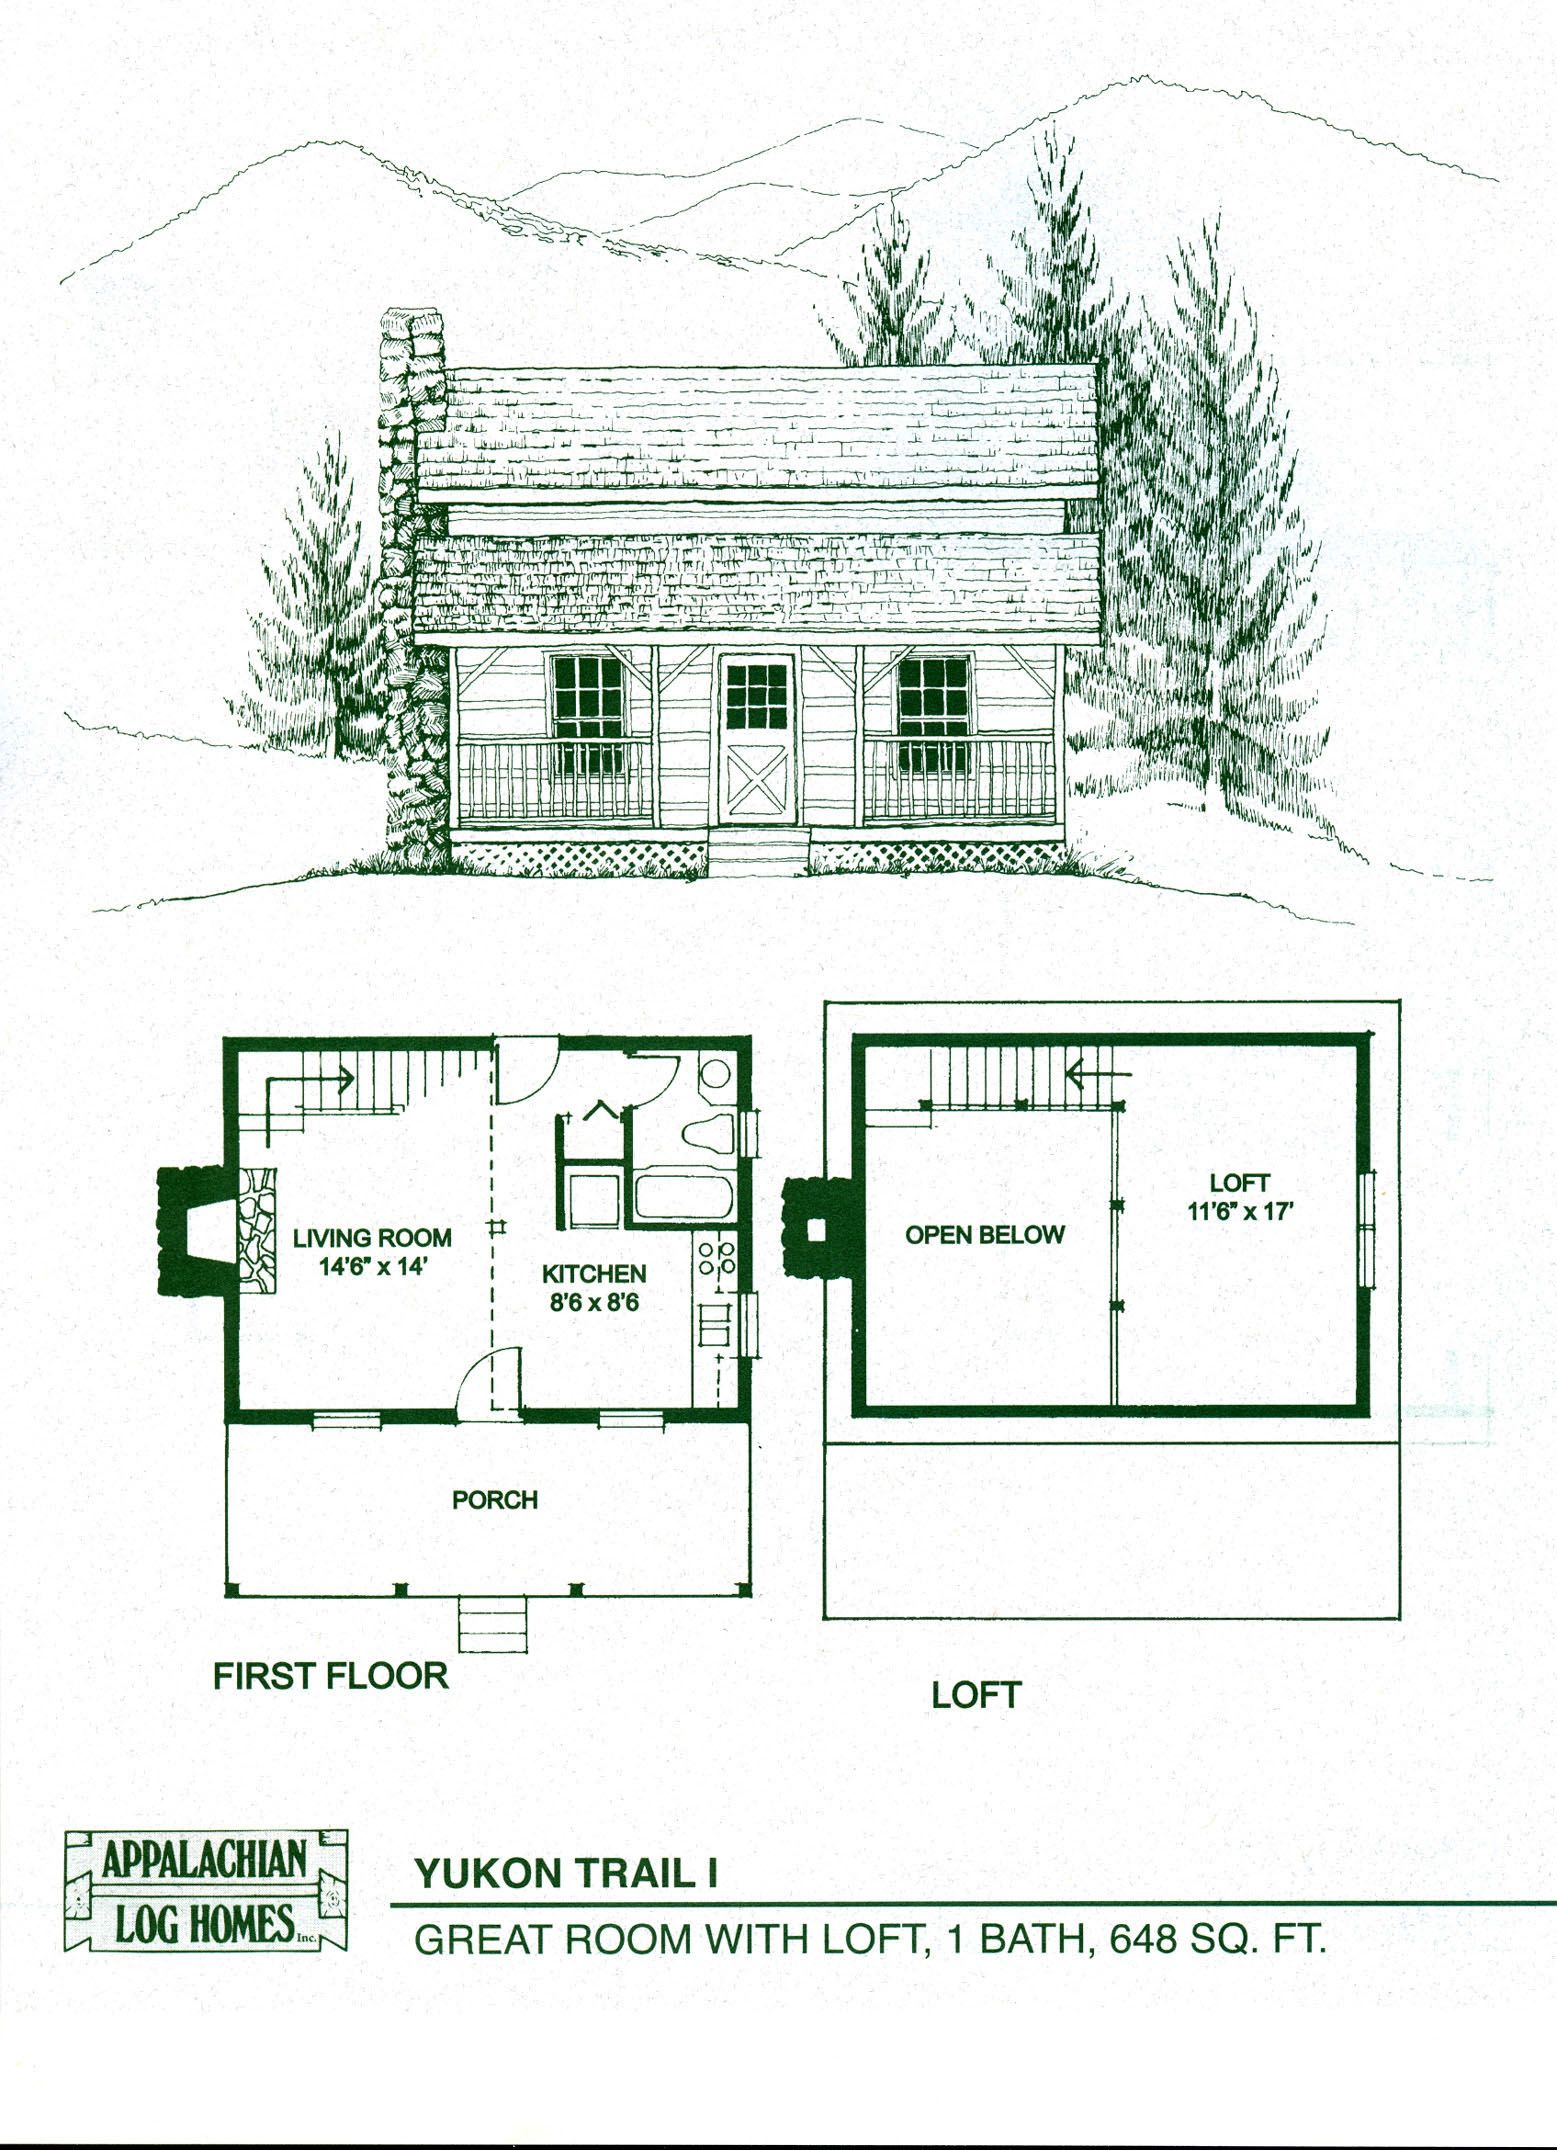 Log home floor plans log cabin kits appalachian log Small cabin plans